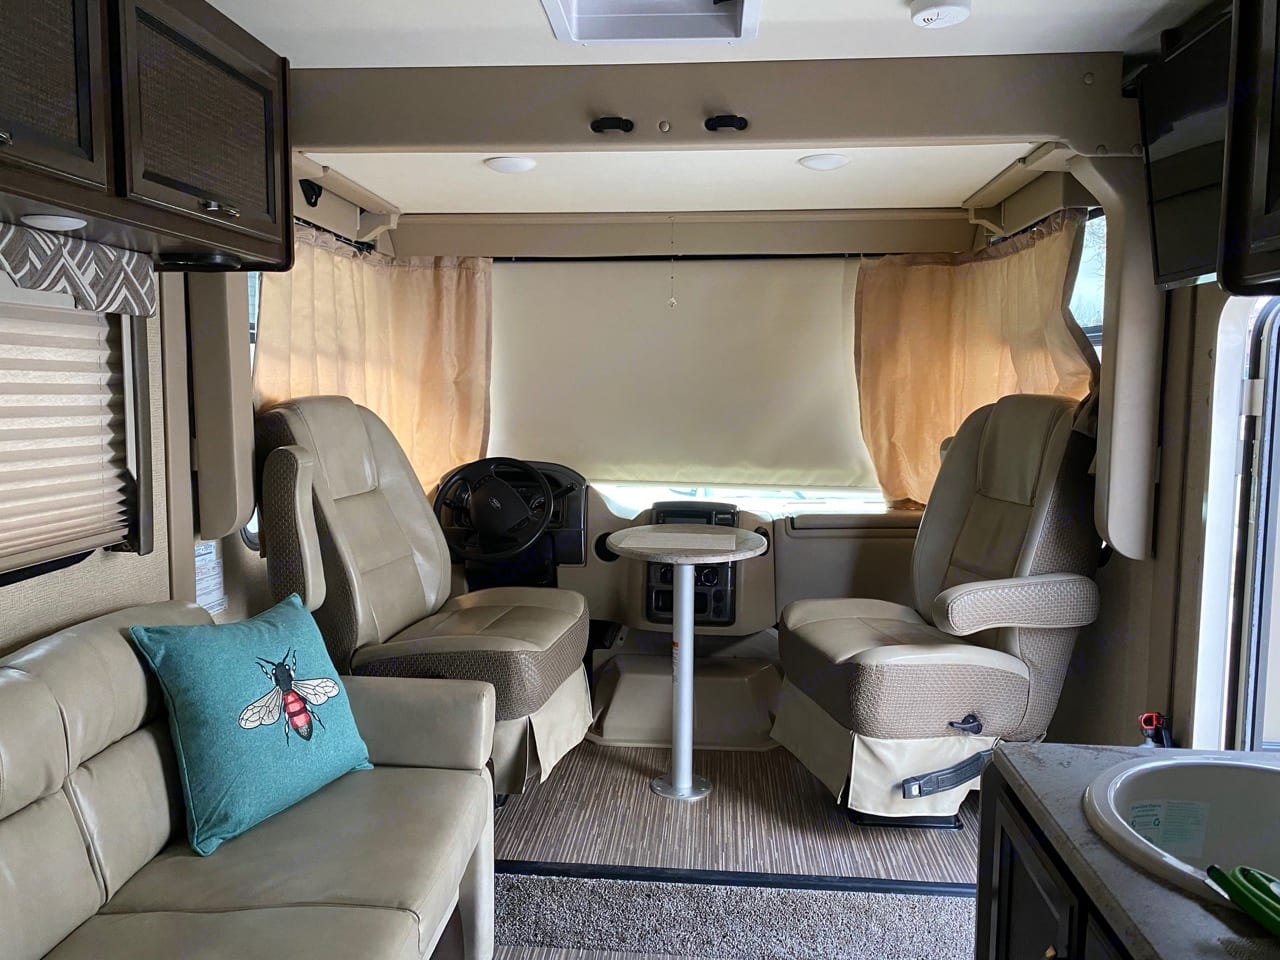 Privacy Shades, Chairs Swivel w/table. Thor Motor Coach Axis 2017